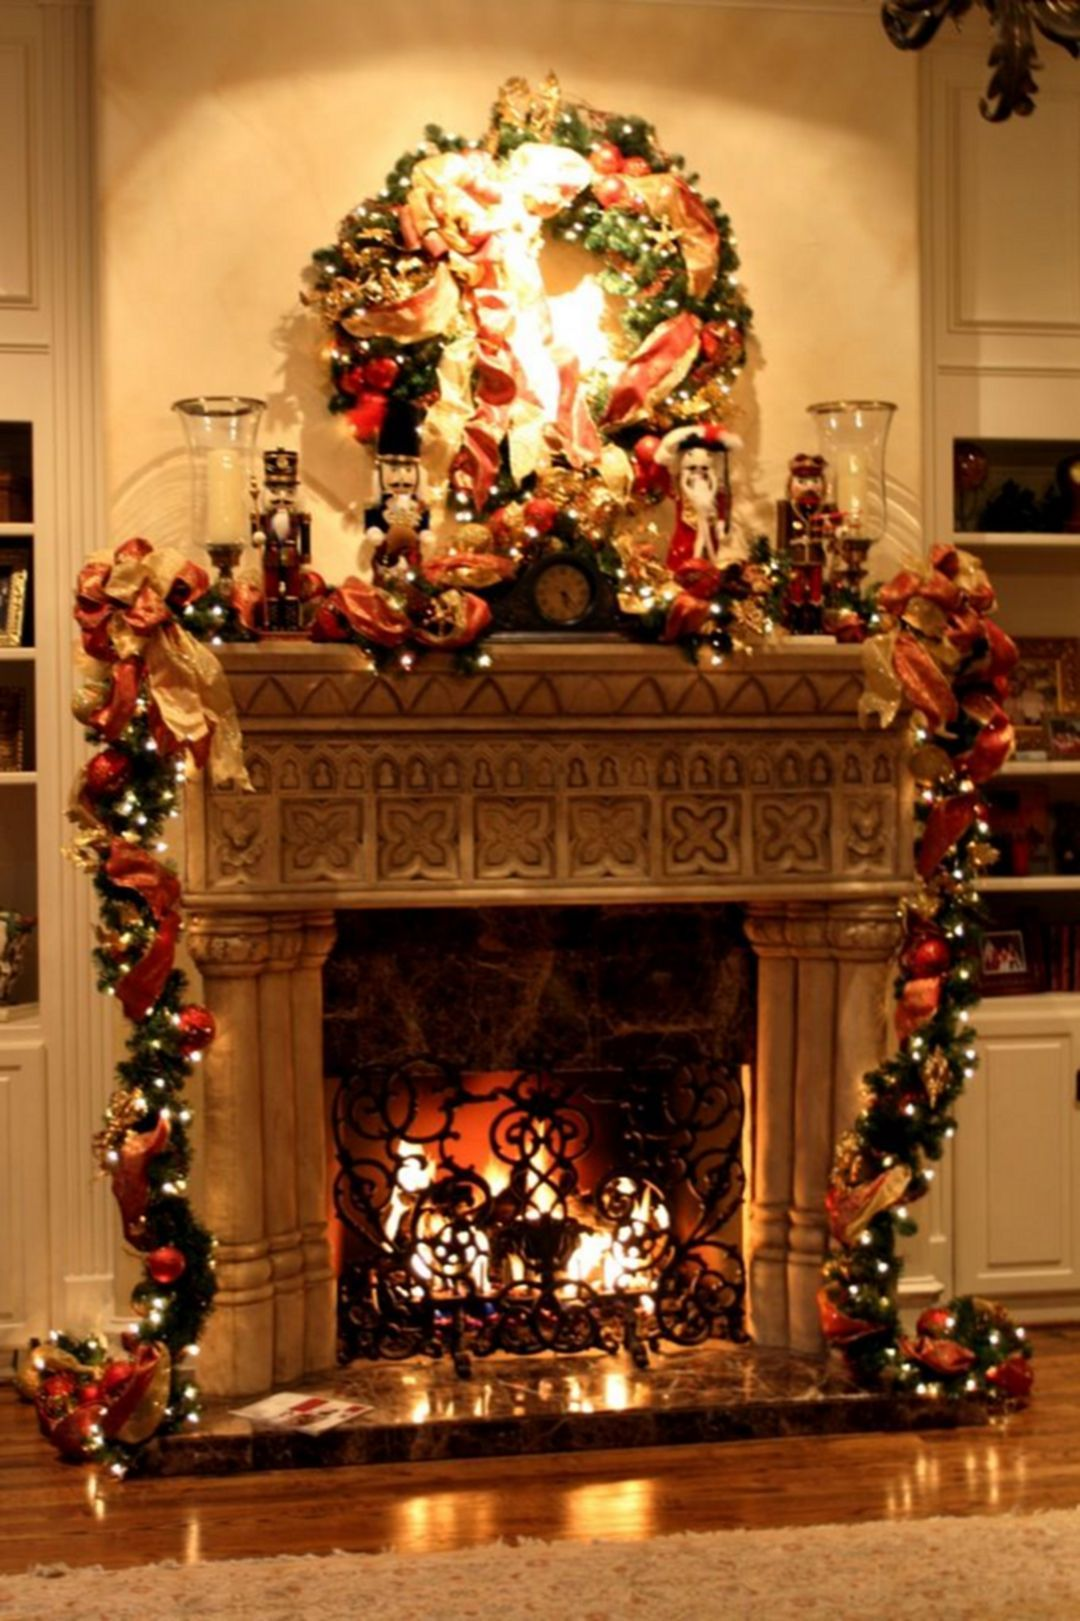 35+ Amazing Christmas Fireplace Decorating Ideas